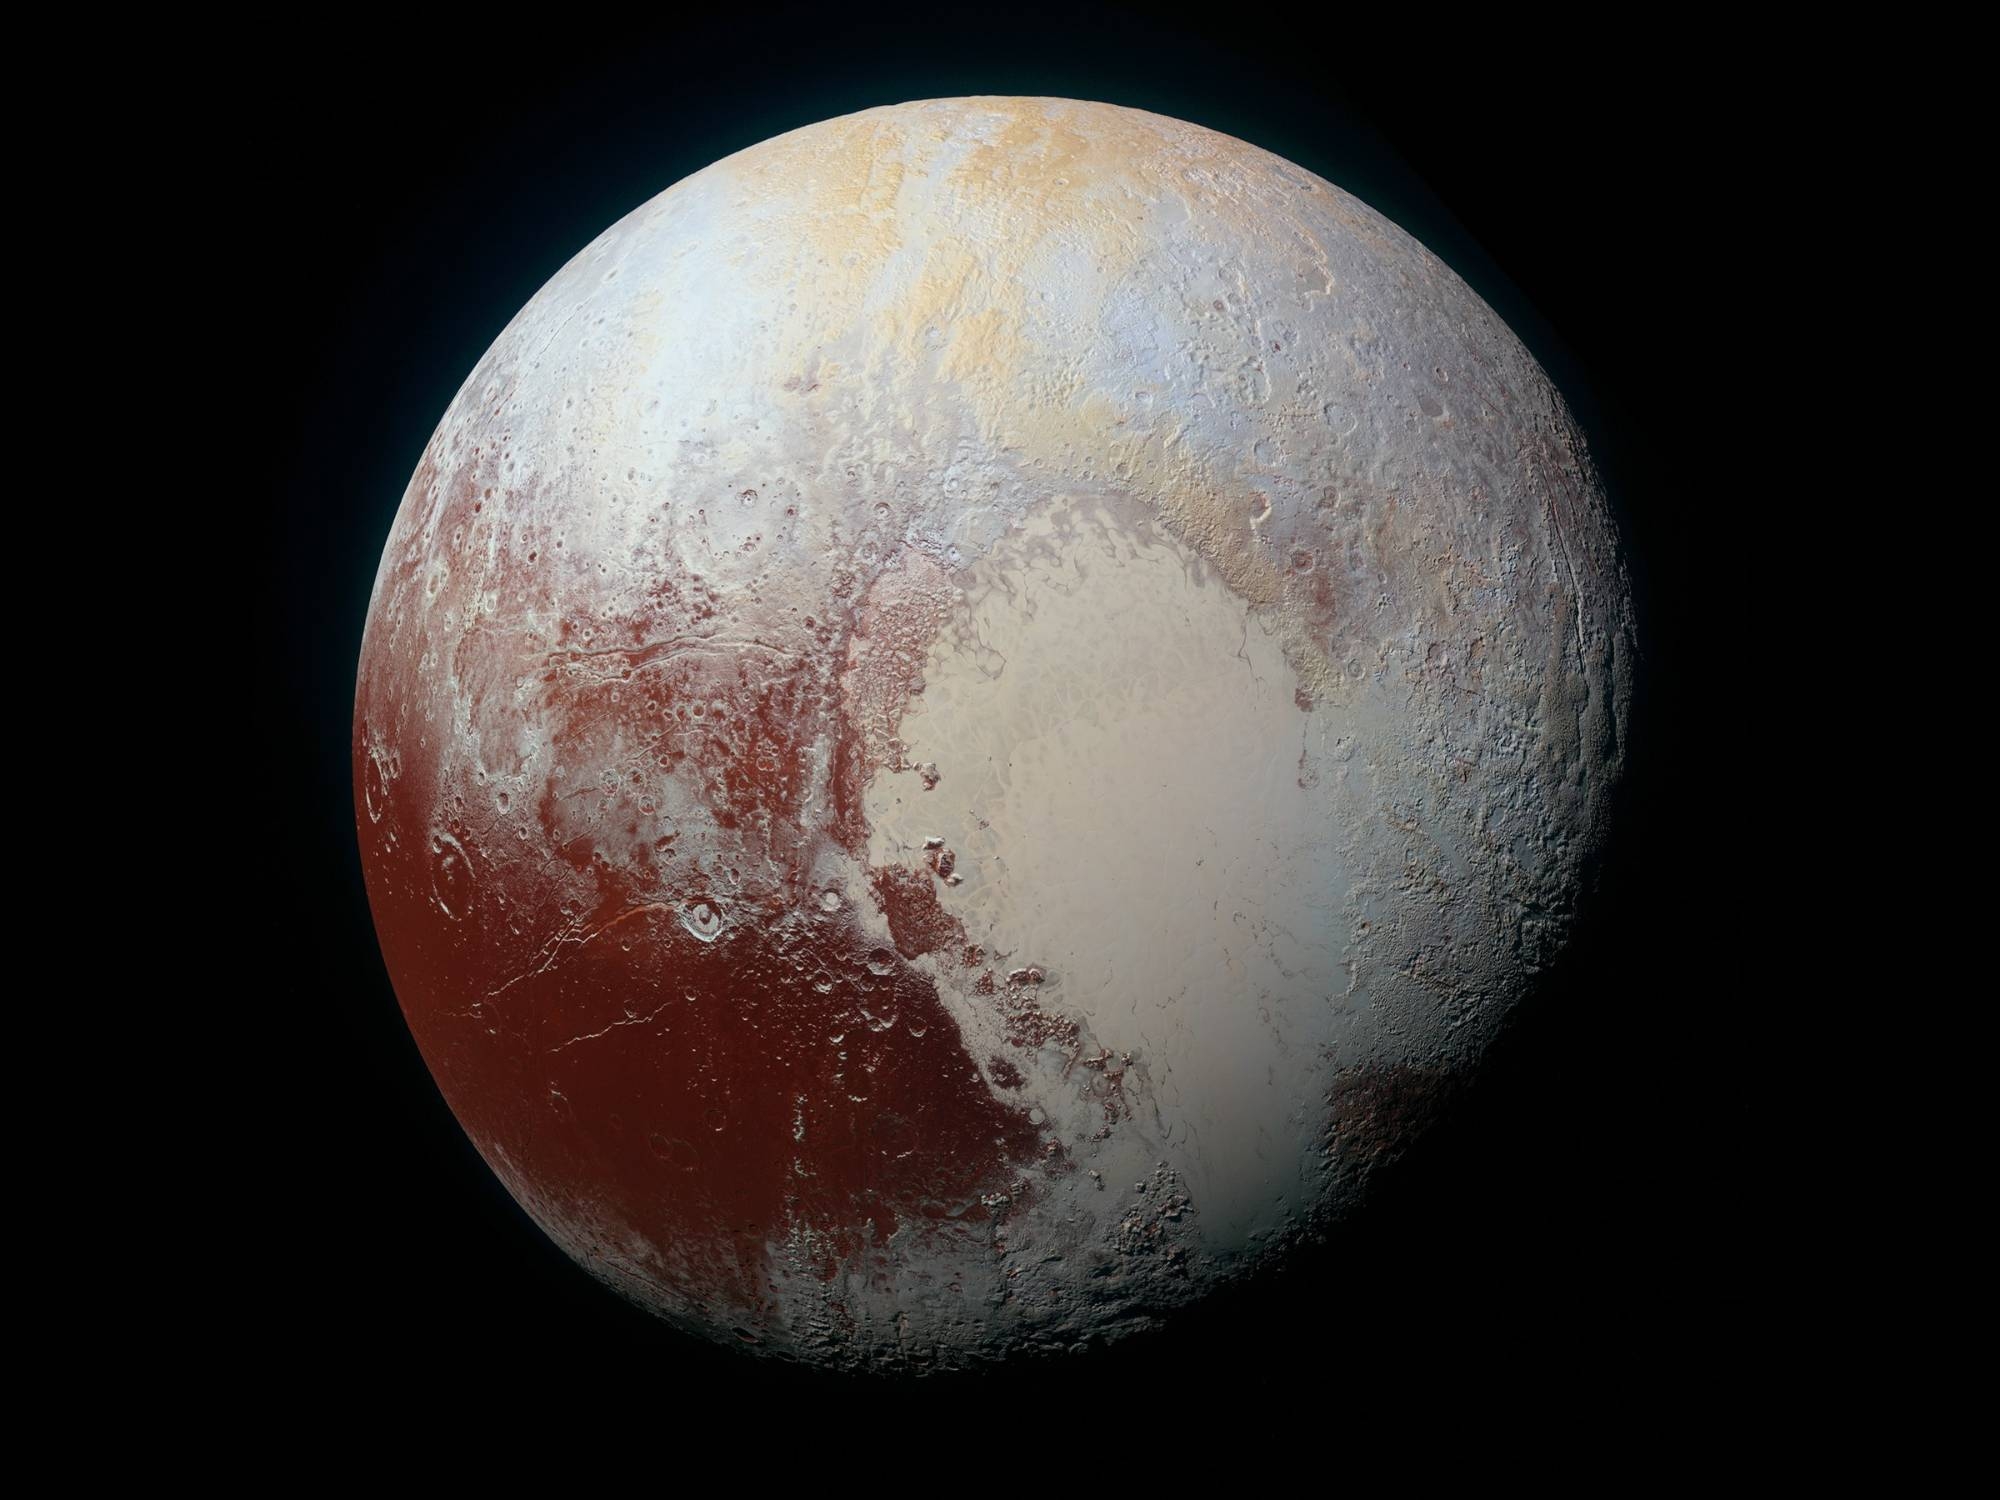 Cartoon of Pluto emphasizing its heart-shaped ice sheet